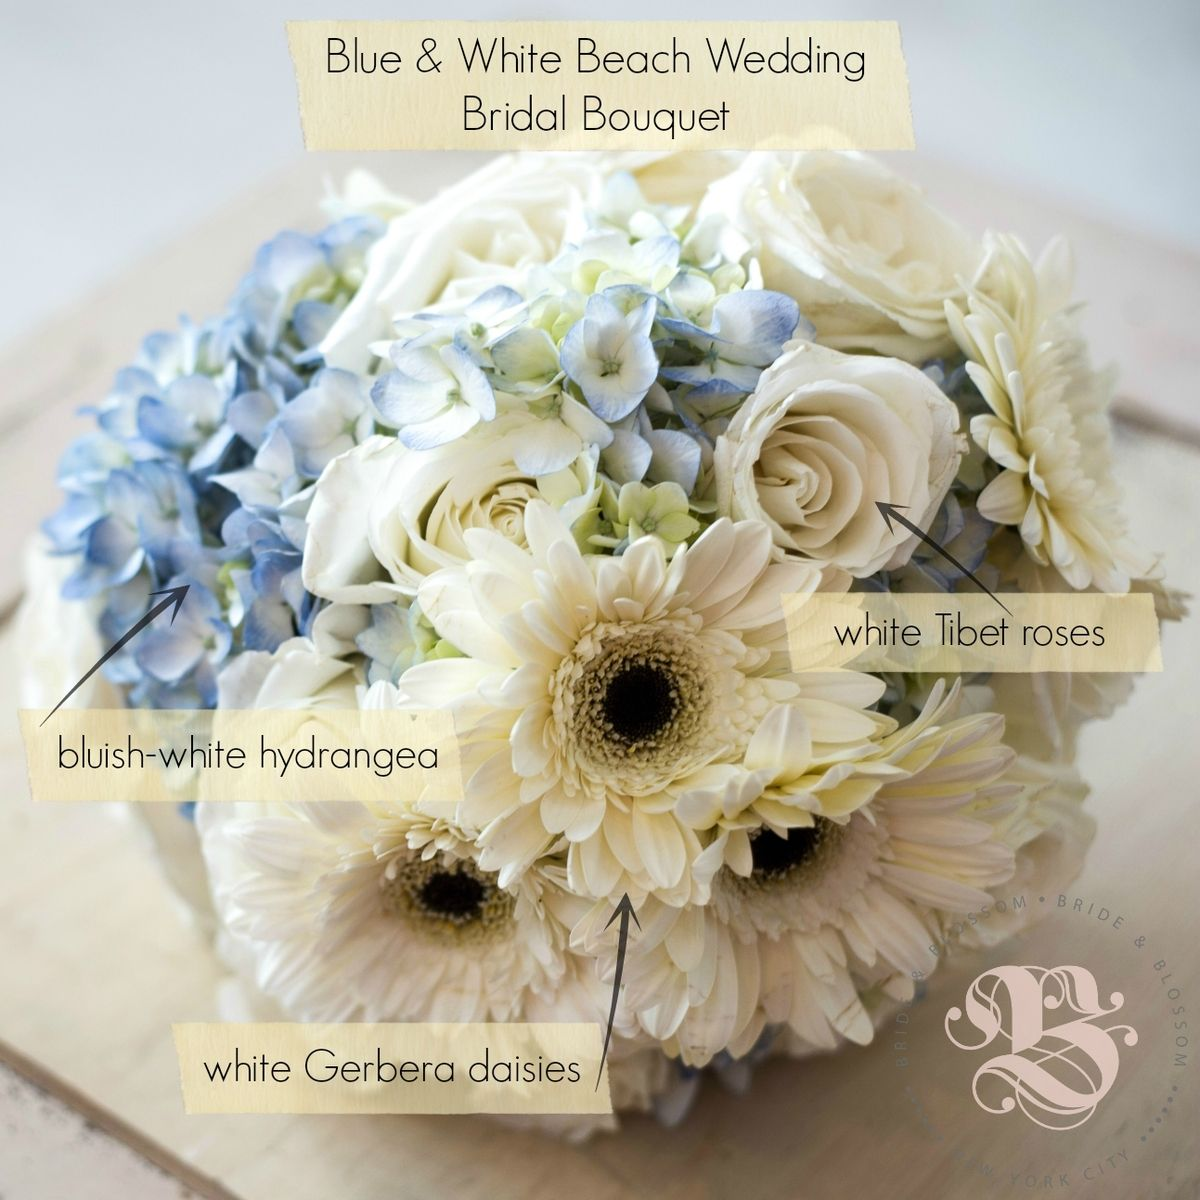 Blue And White Flowers For Weddings: Blue & White Bridal Bouquet Recipe